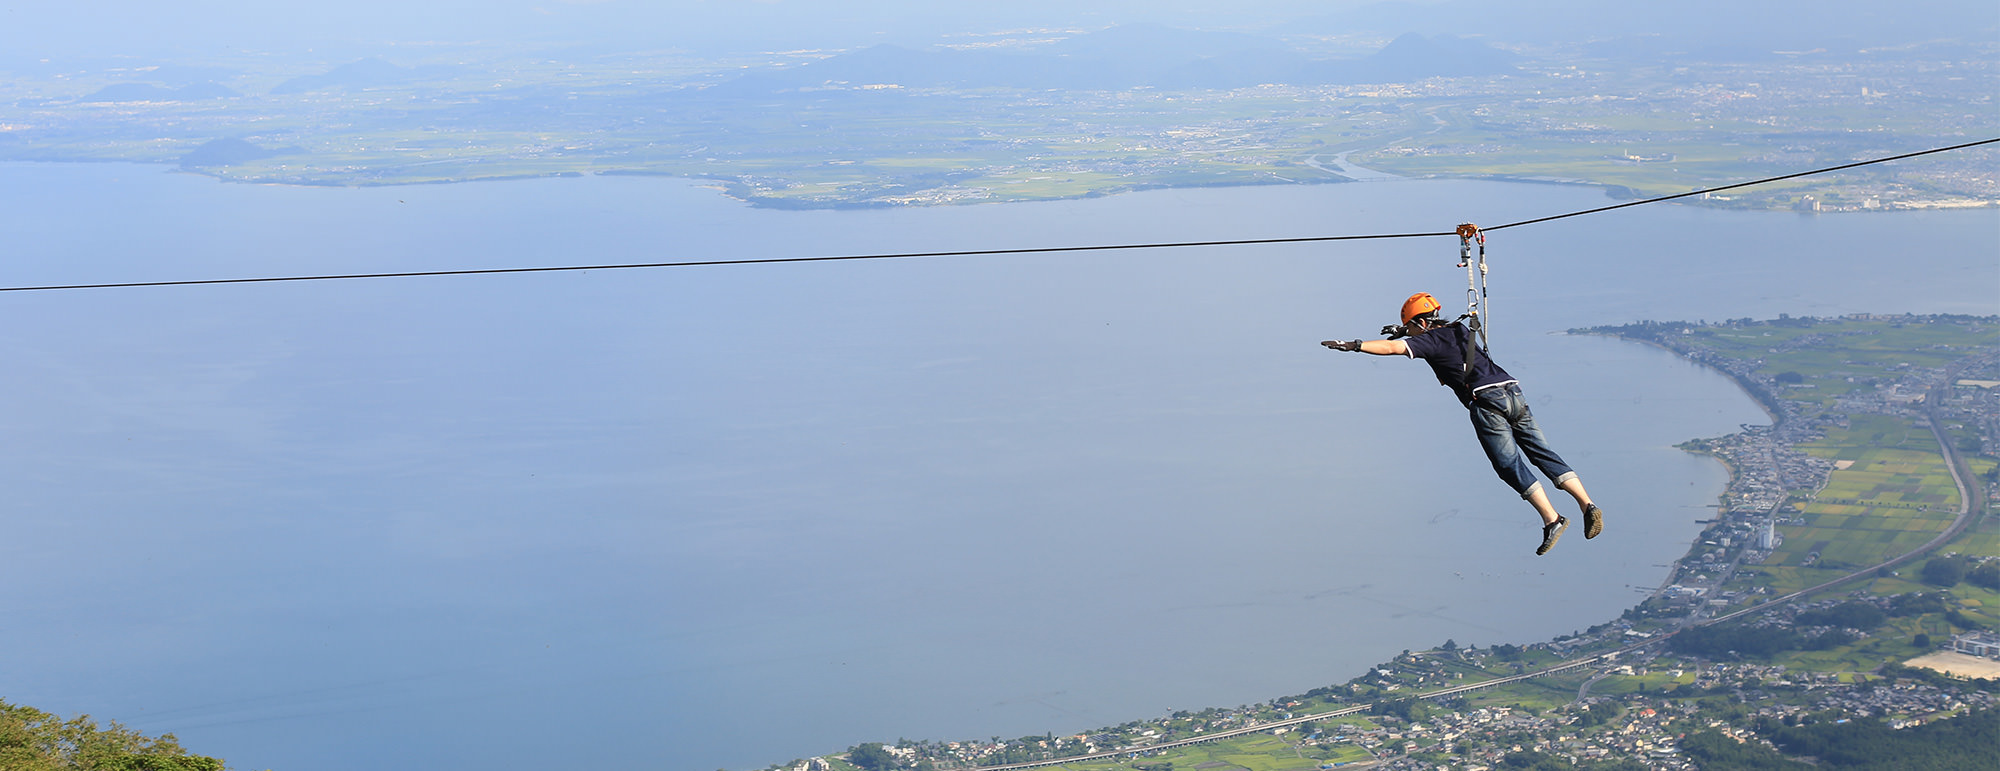 Zip Line Harness >> Biwako Valley - Shiga | IS JAPAN COOL?-Travel and Culture ...